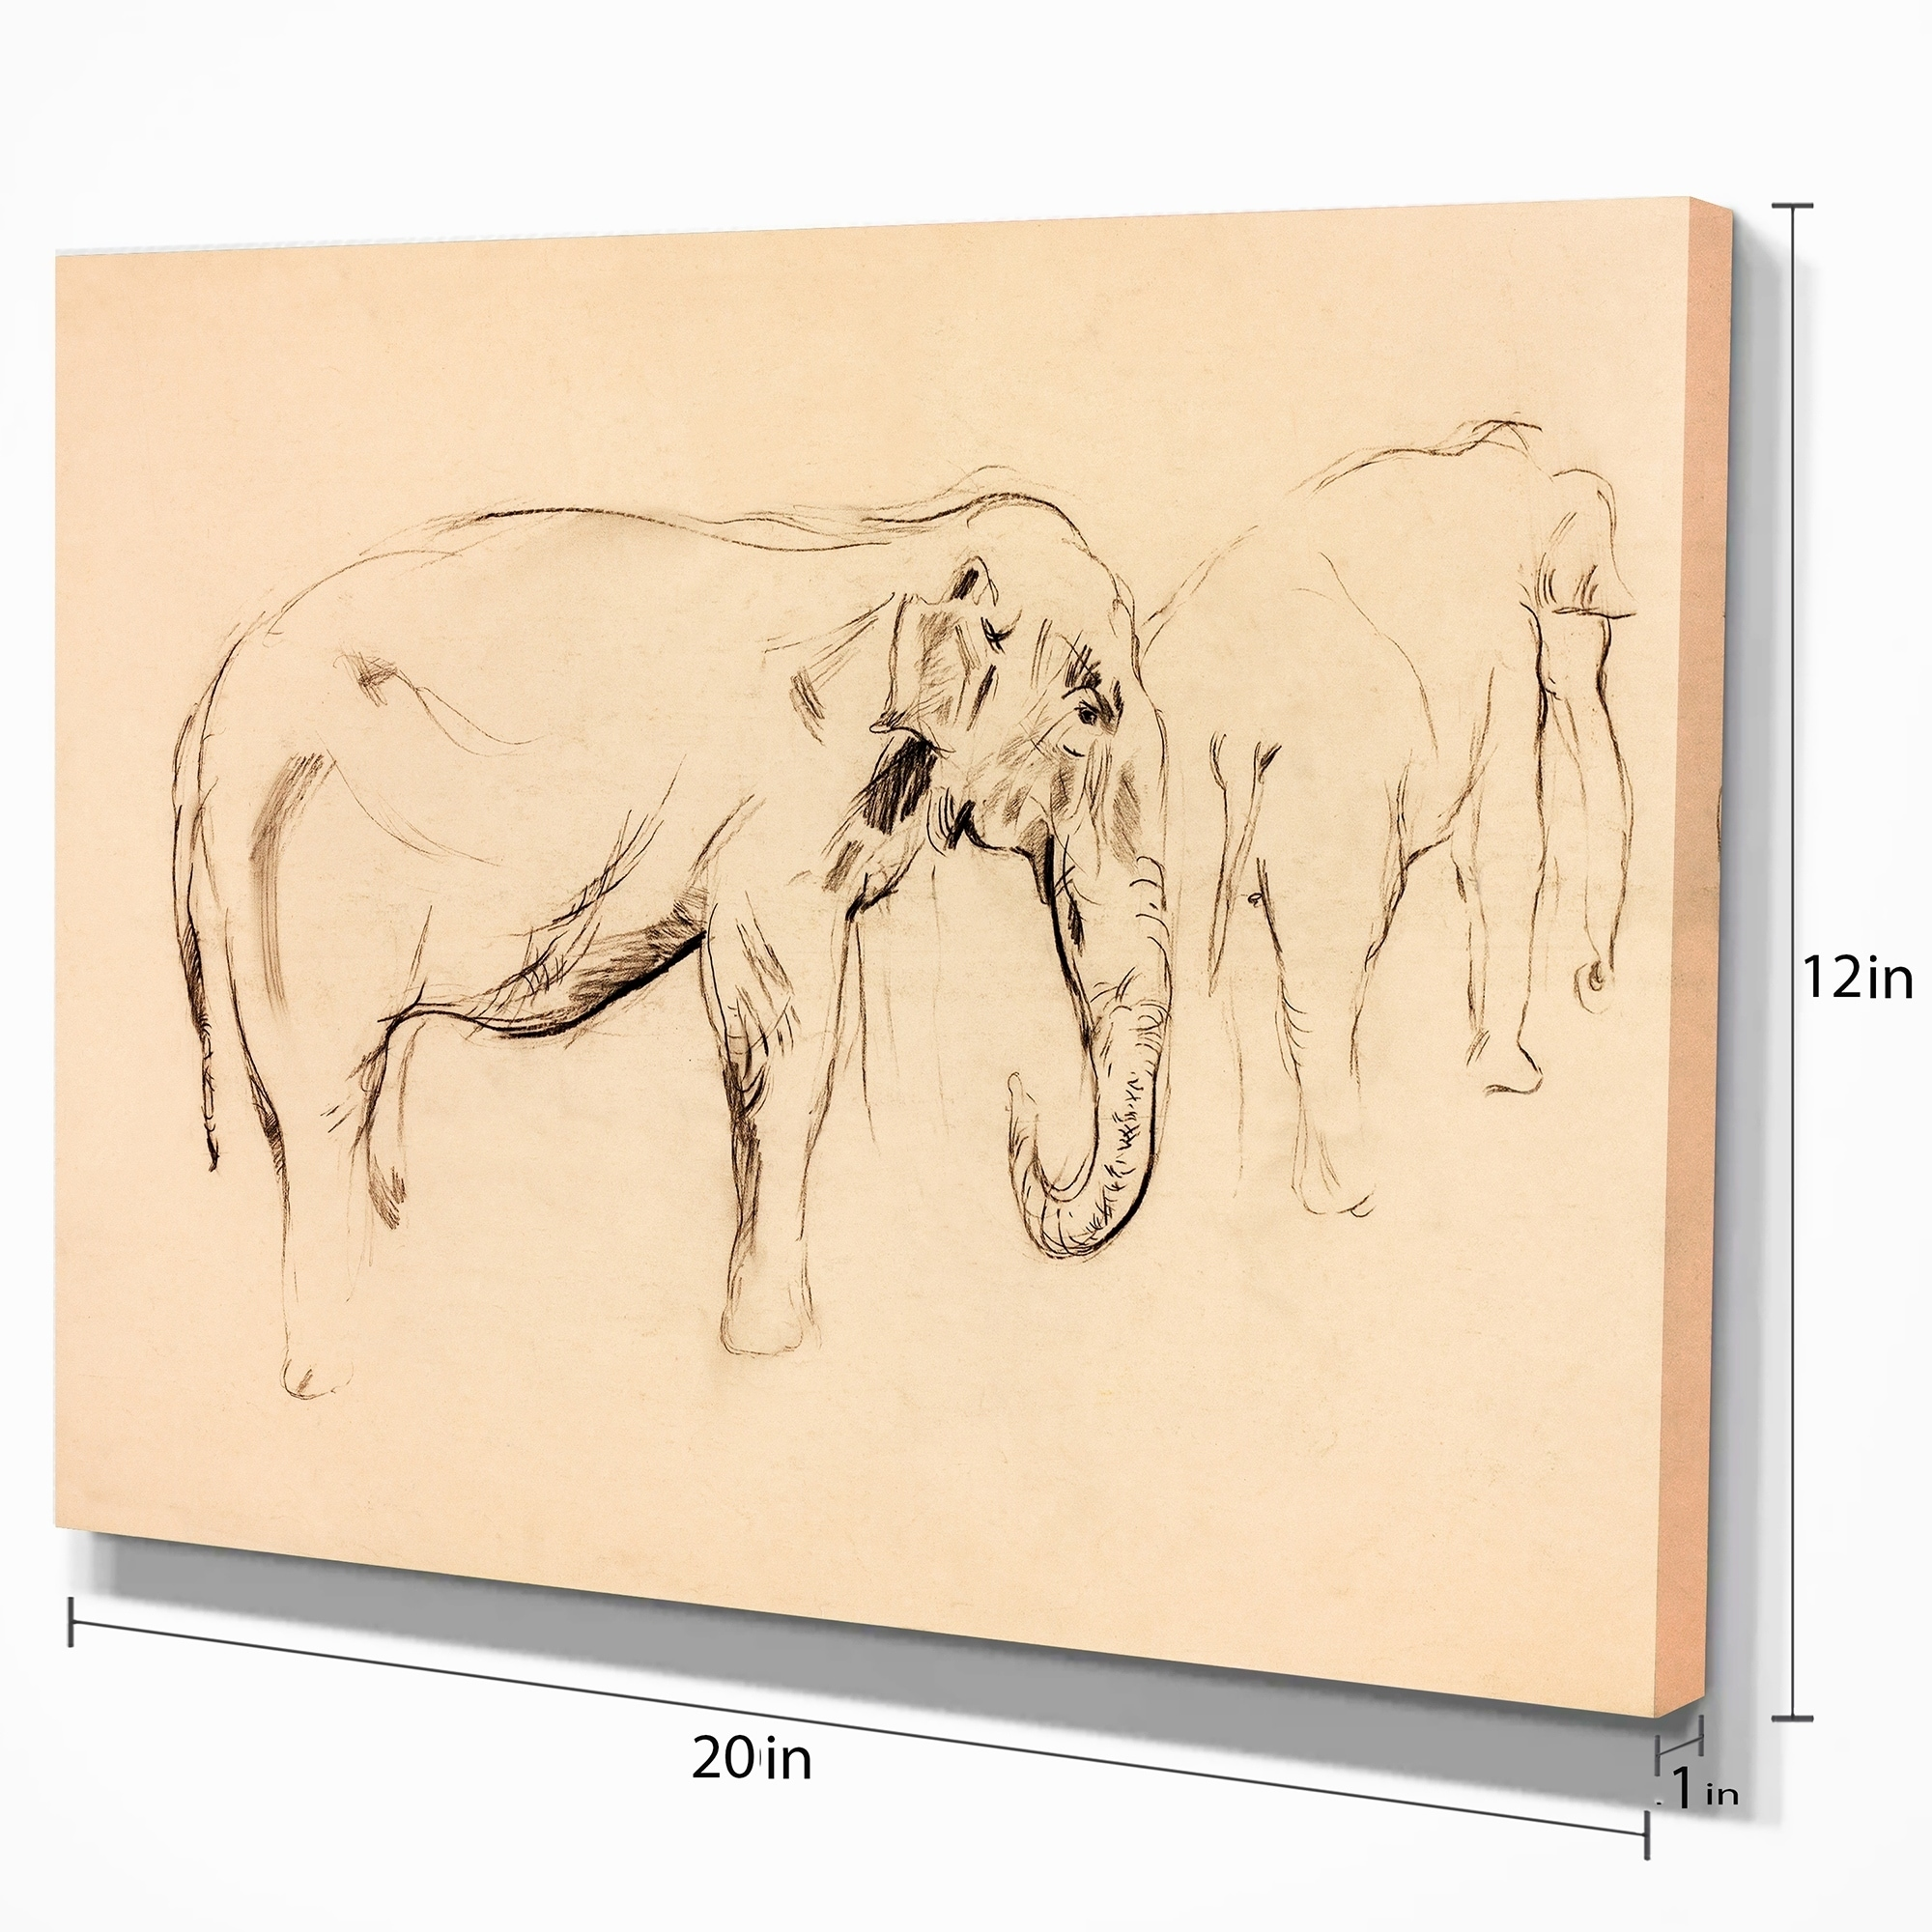 Shop designart elephant sketch animals sketch painting print on wrapped canvas brown on sale free shipping on orders over 45 overstock 21276146